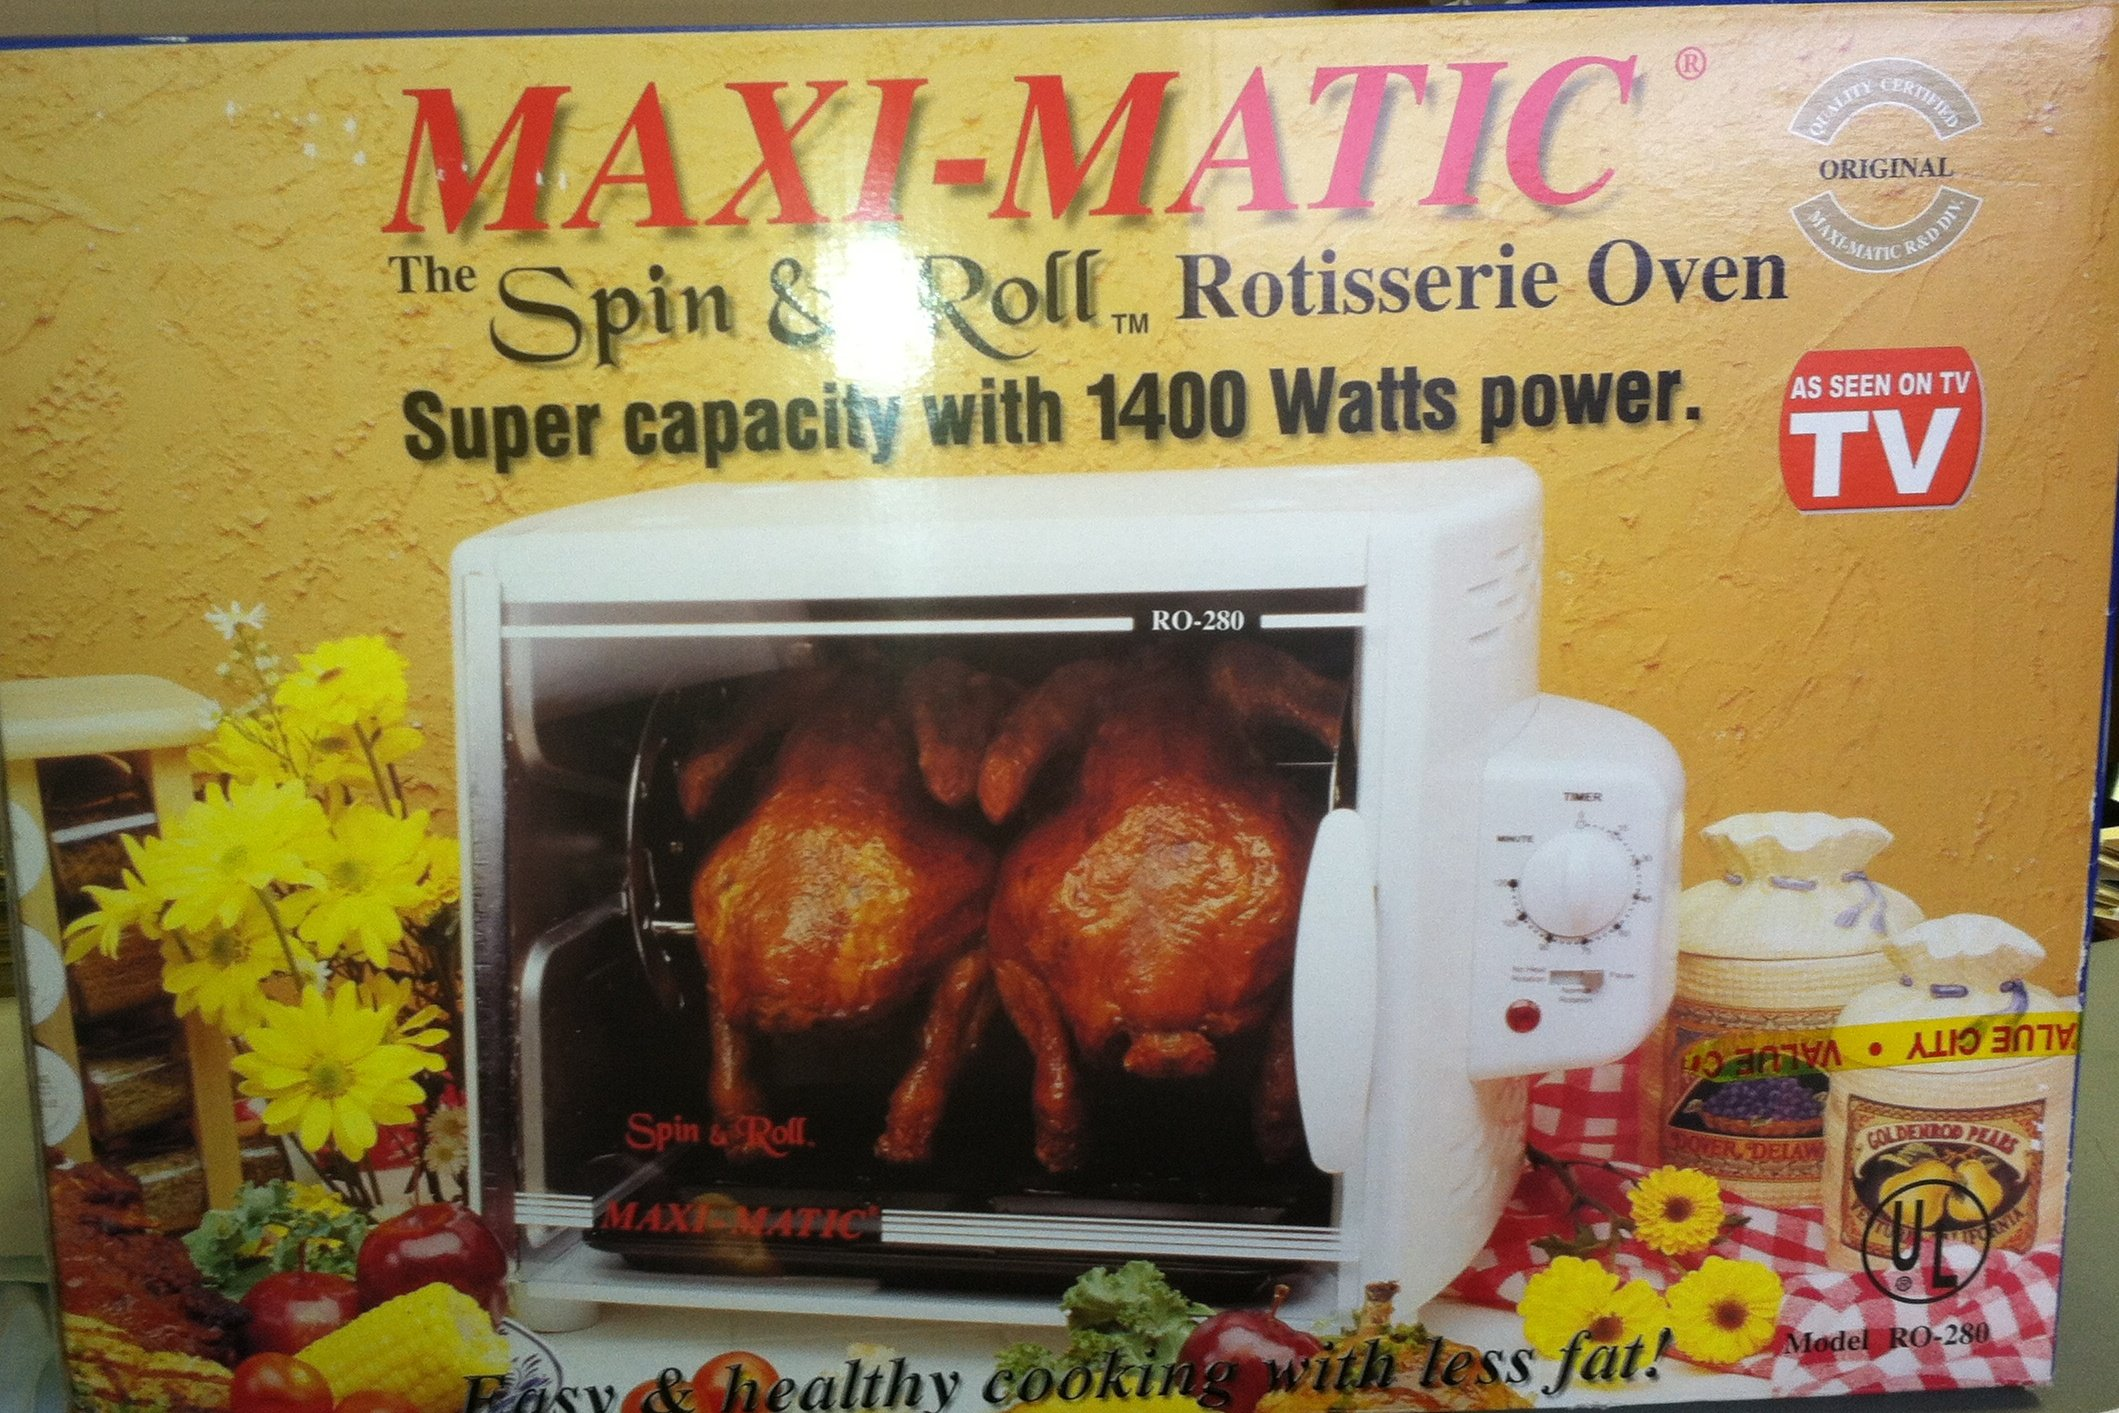 MAXI-MATIC RO-280 Spin & Roll Rotisserie Oven